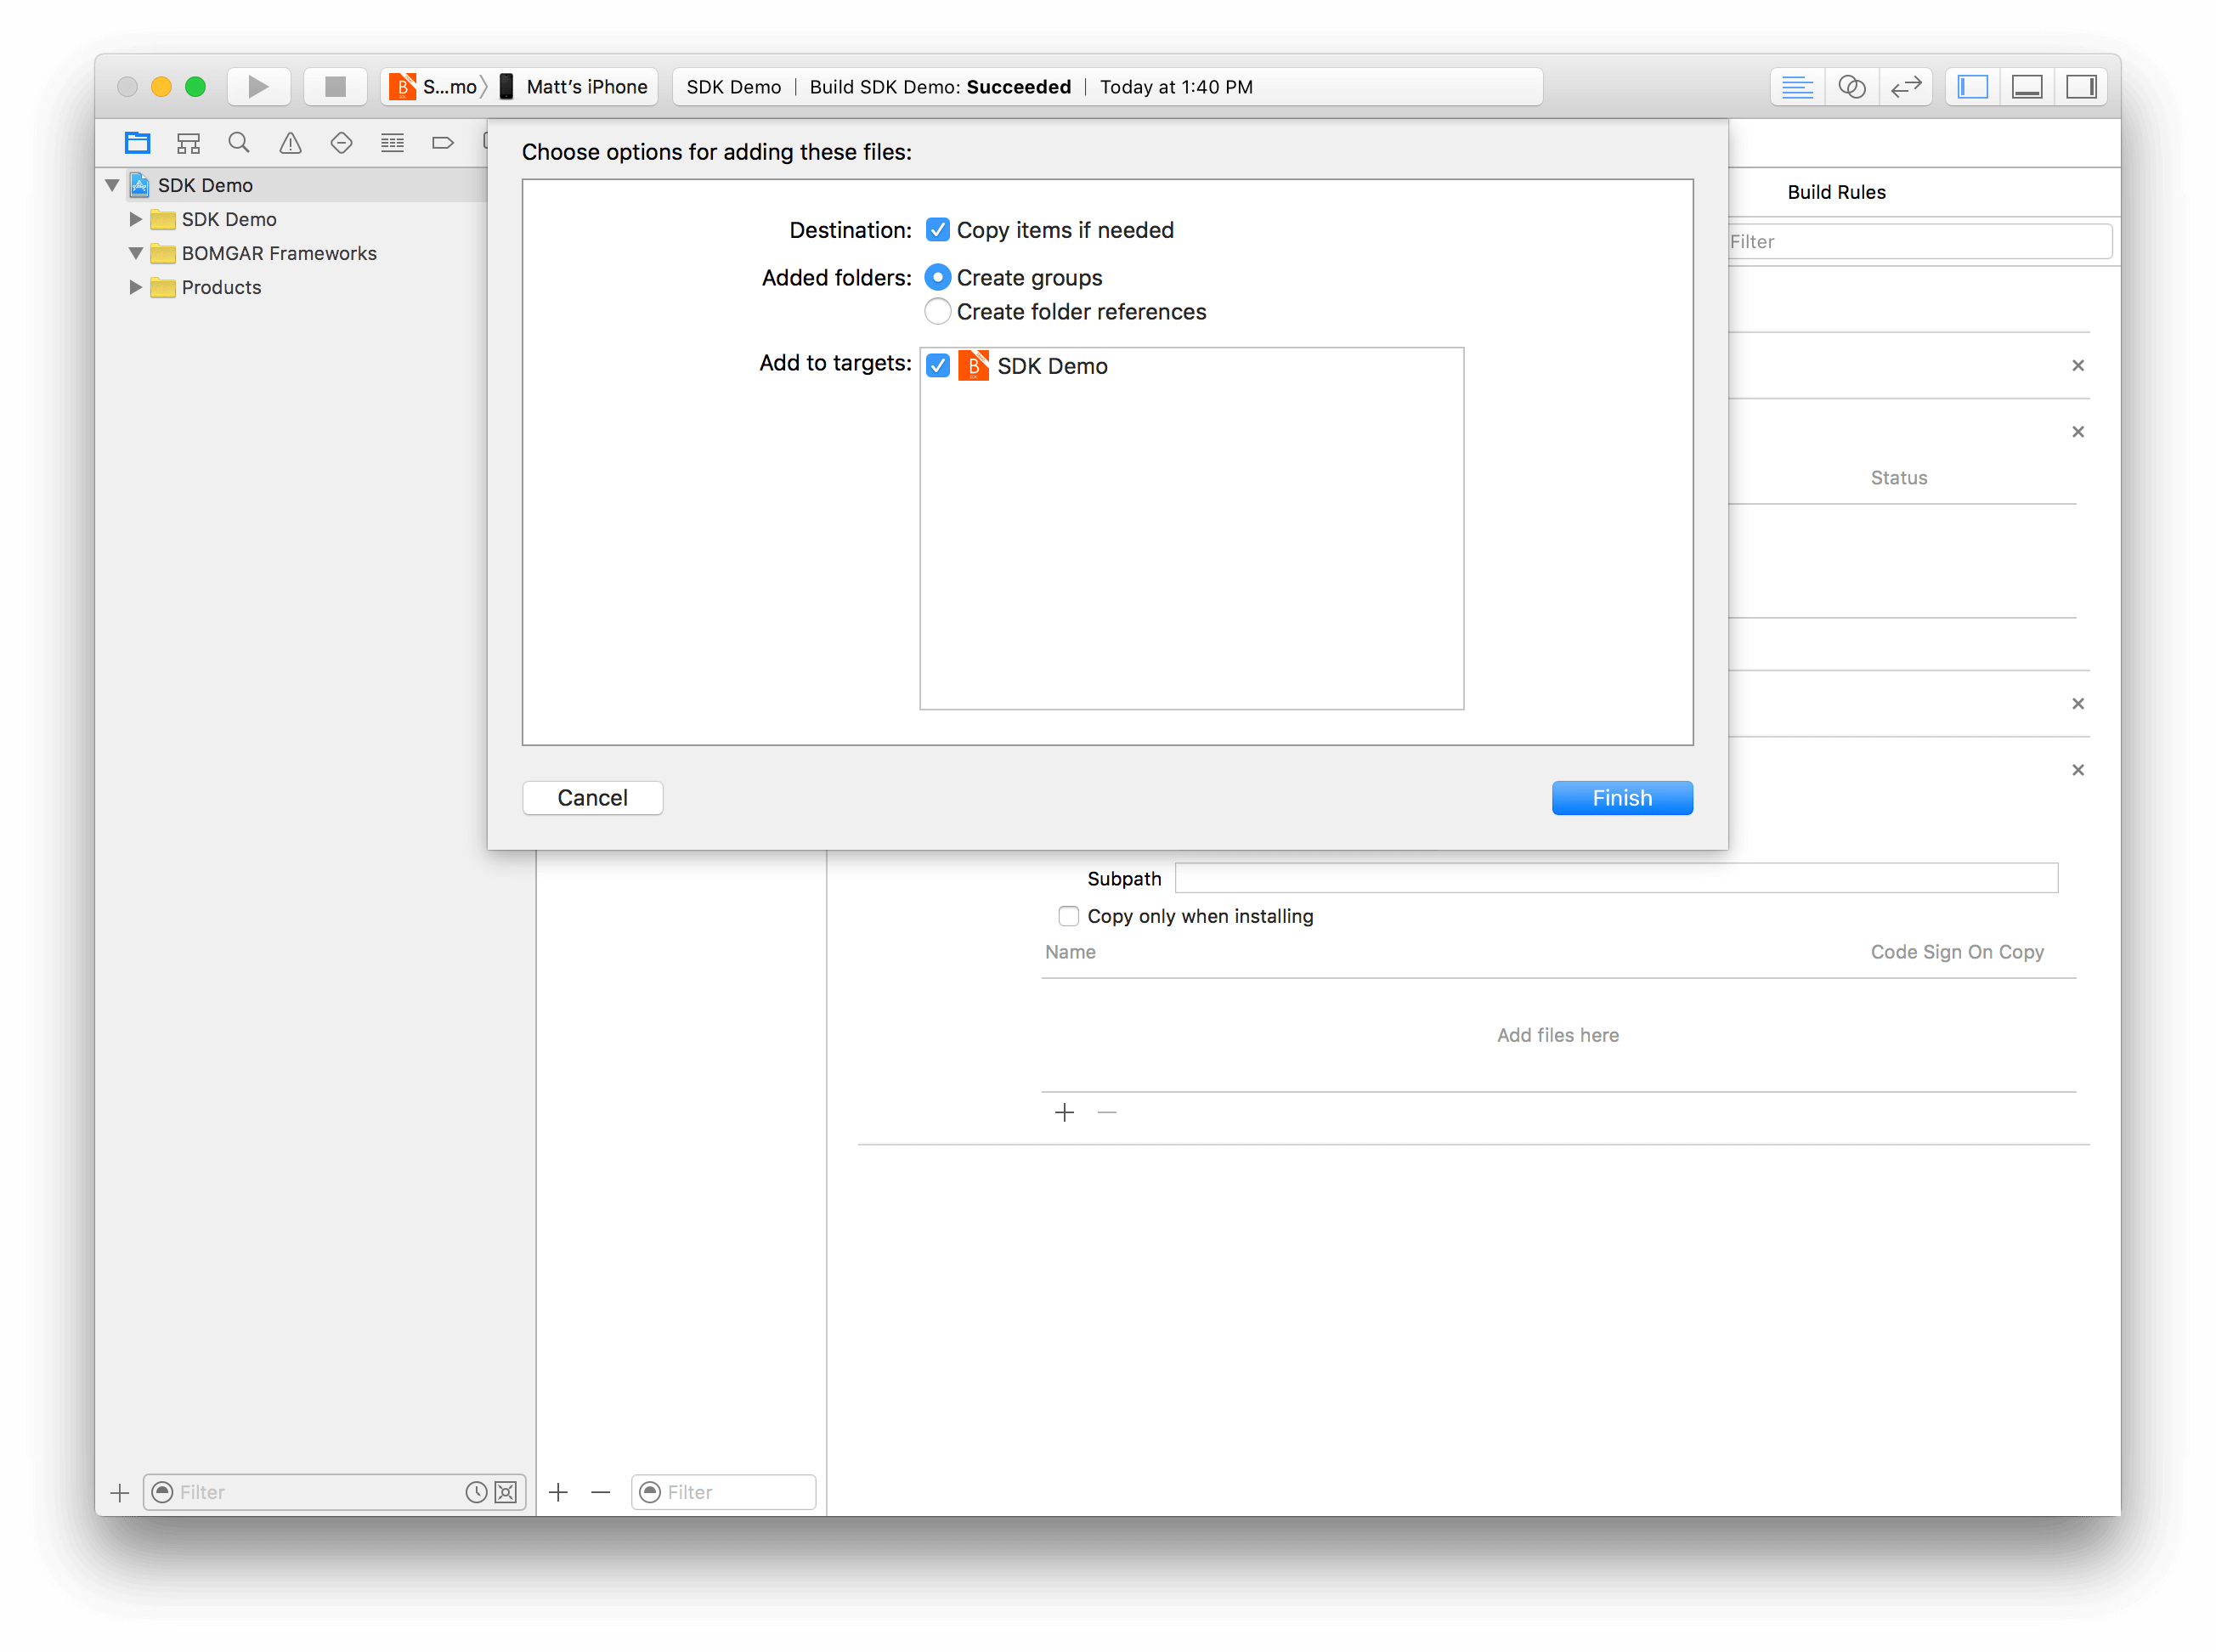 Getting Started with the iOS SDK